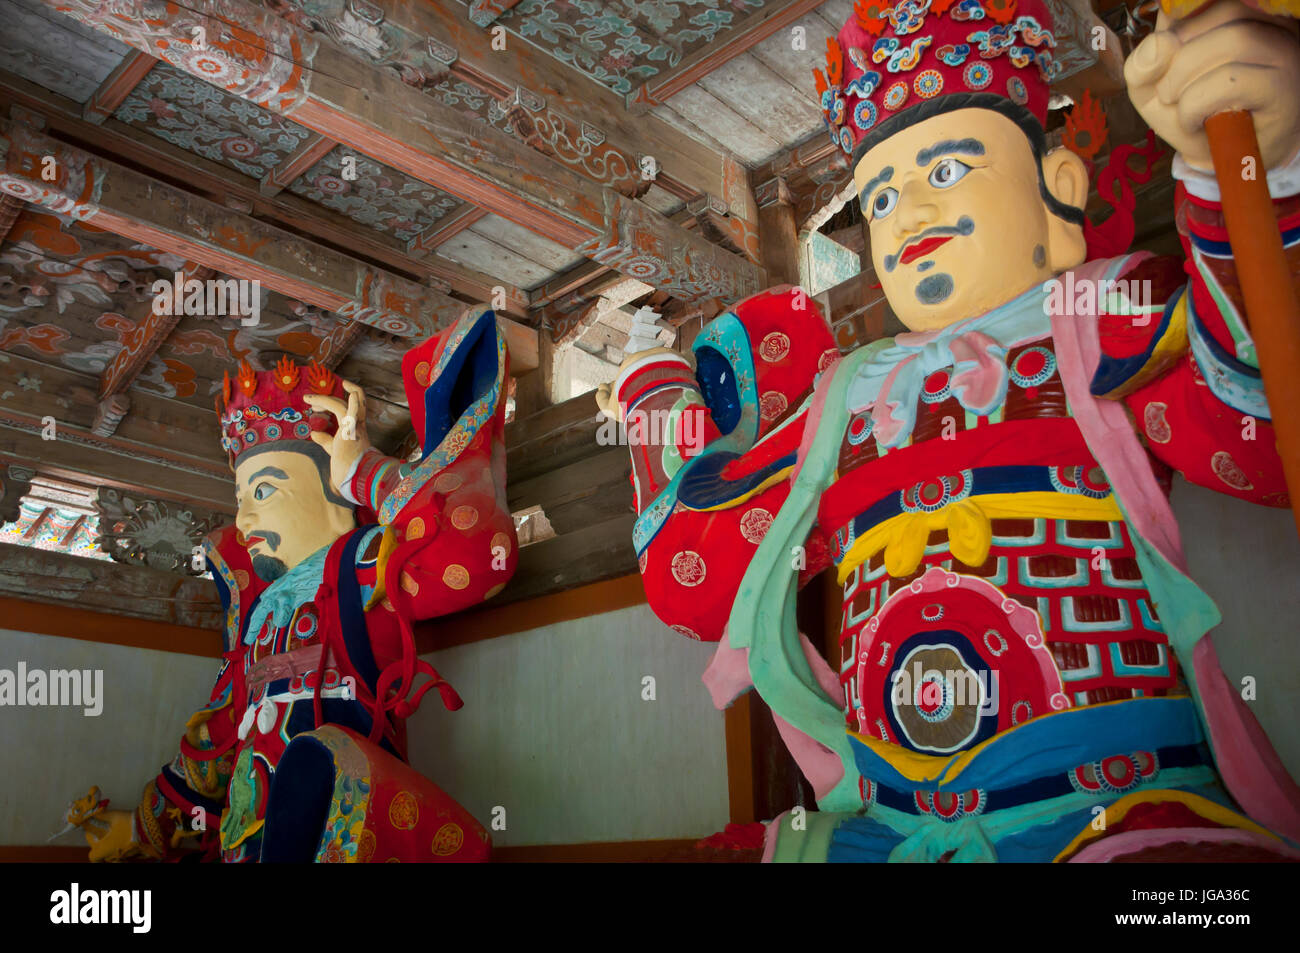 Colourful statues at the Buddhist Pohyon-temple, Mount Myohyang-san, North Korea Stock Photo